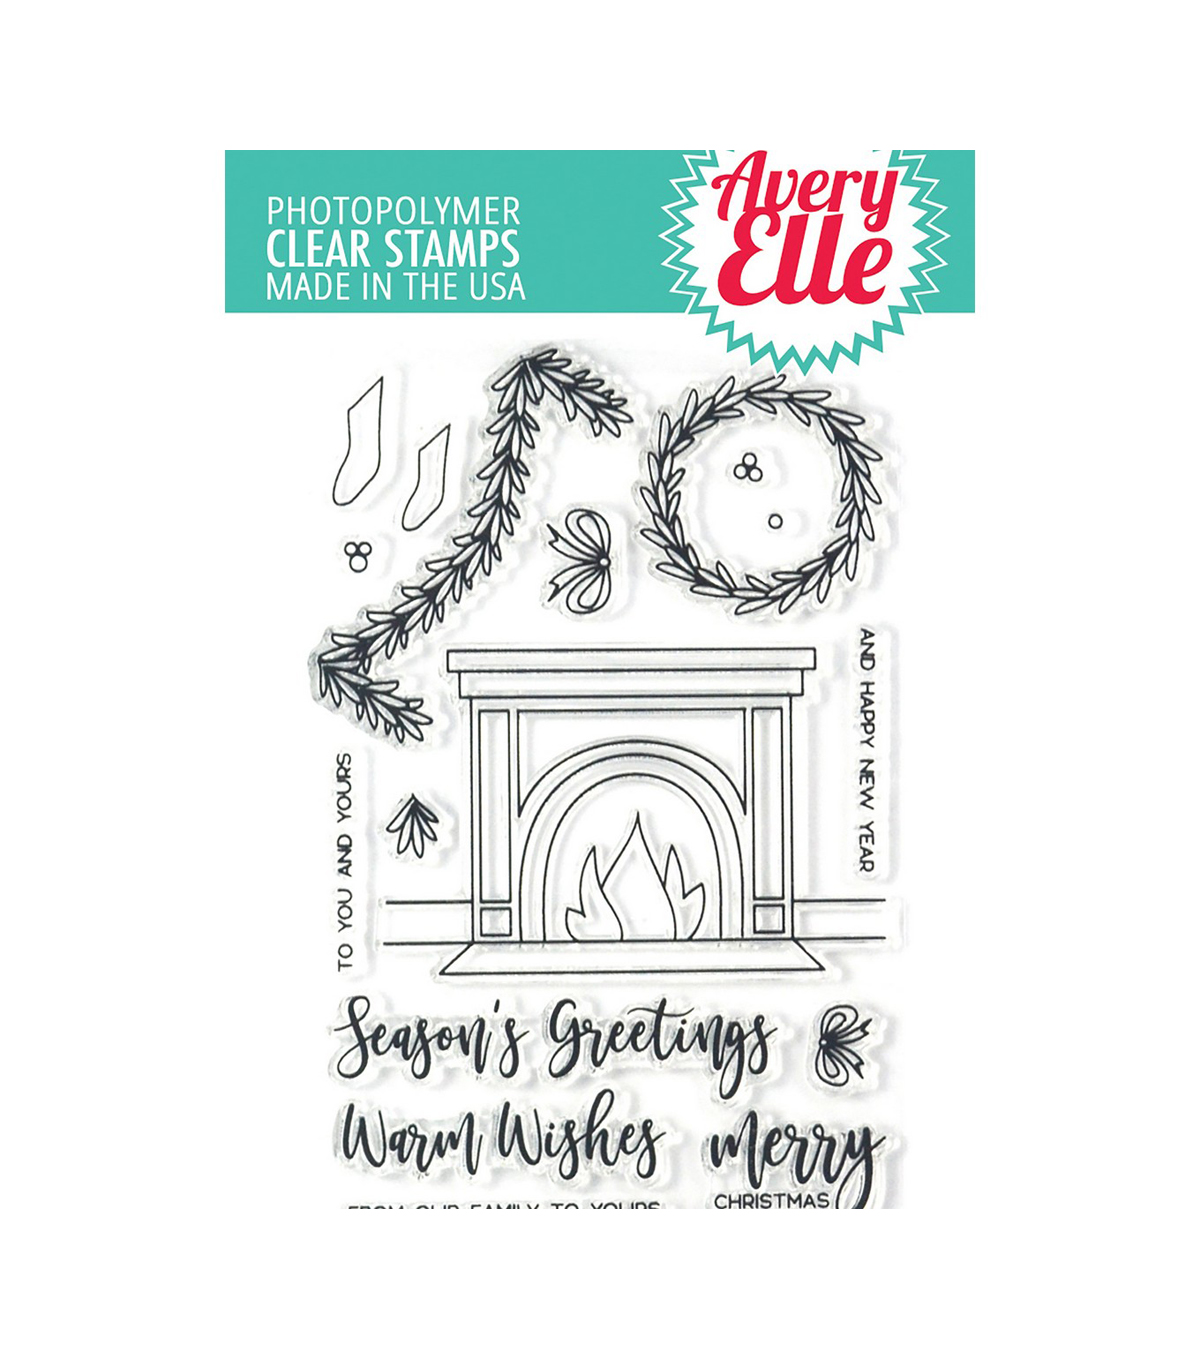 Avery Elle Christmas 17 pk Clear Stamps-Fireside